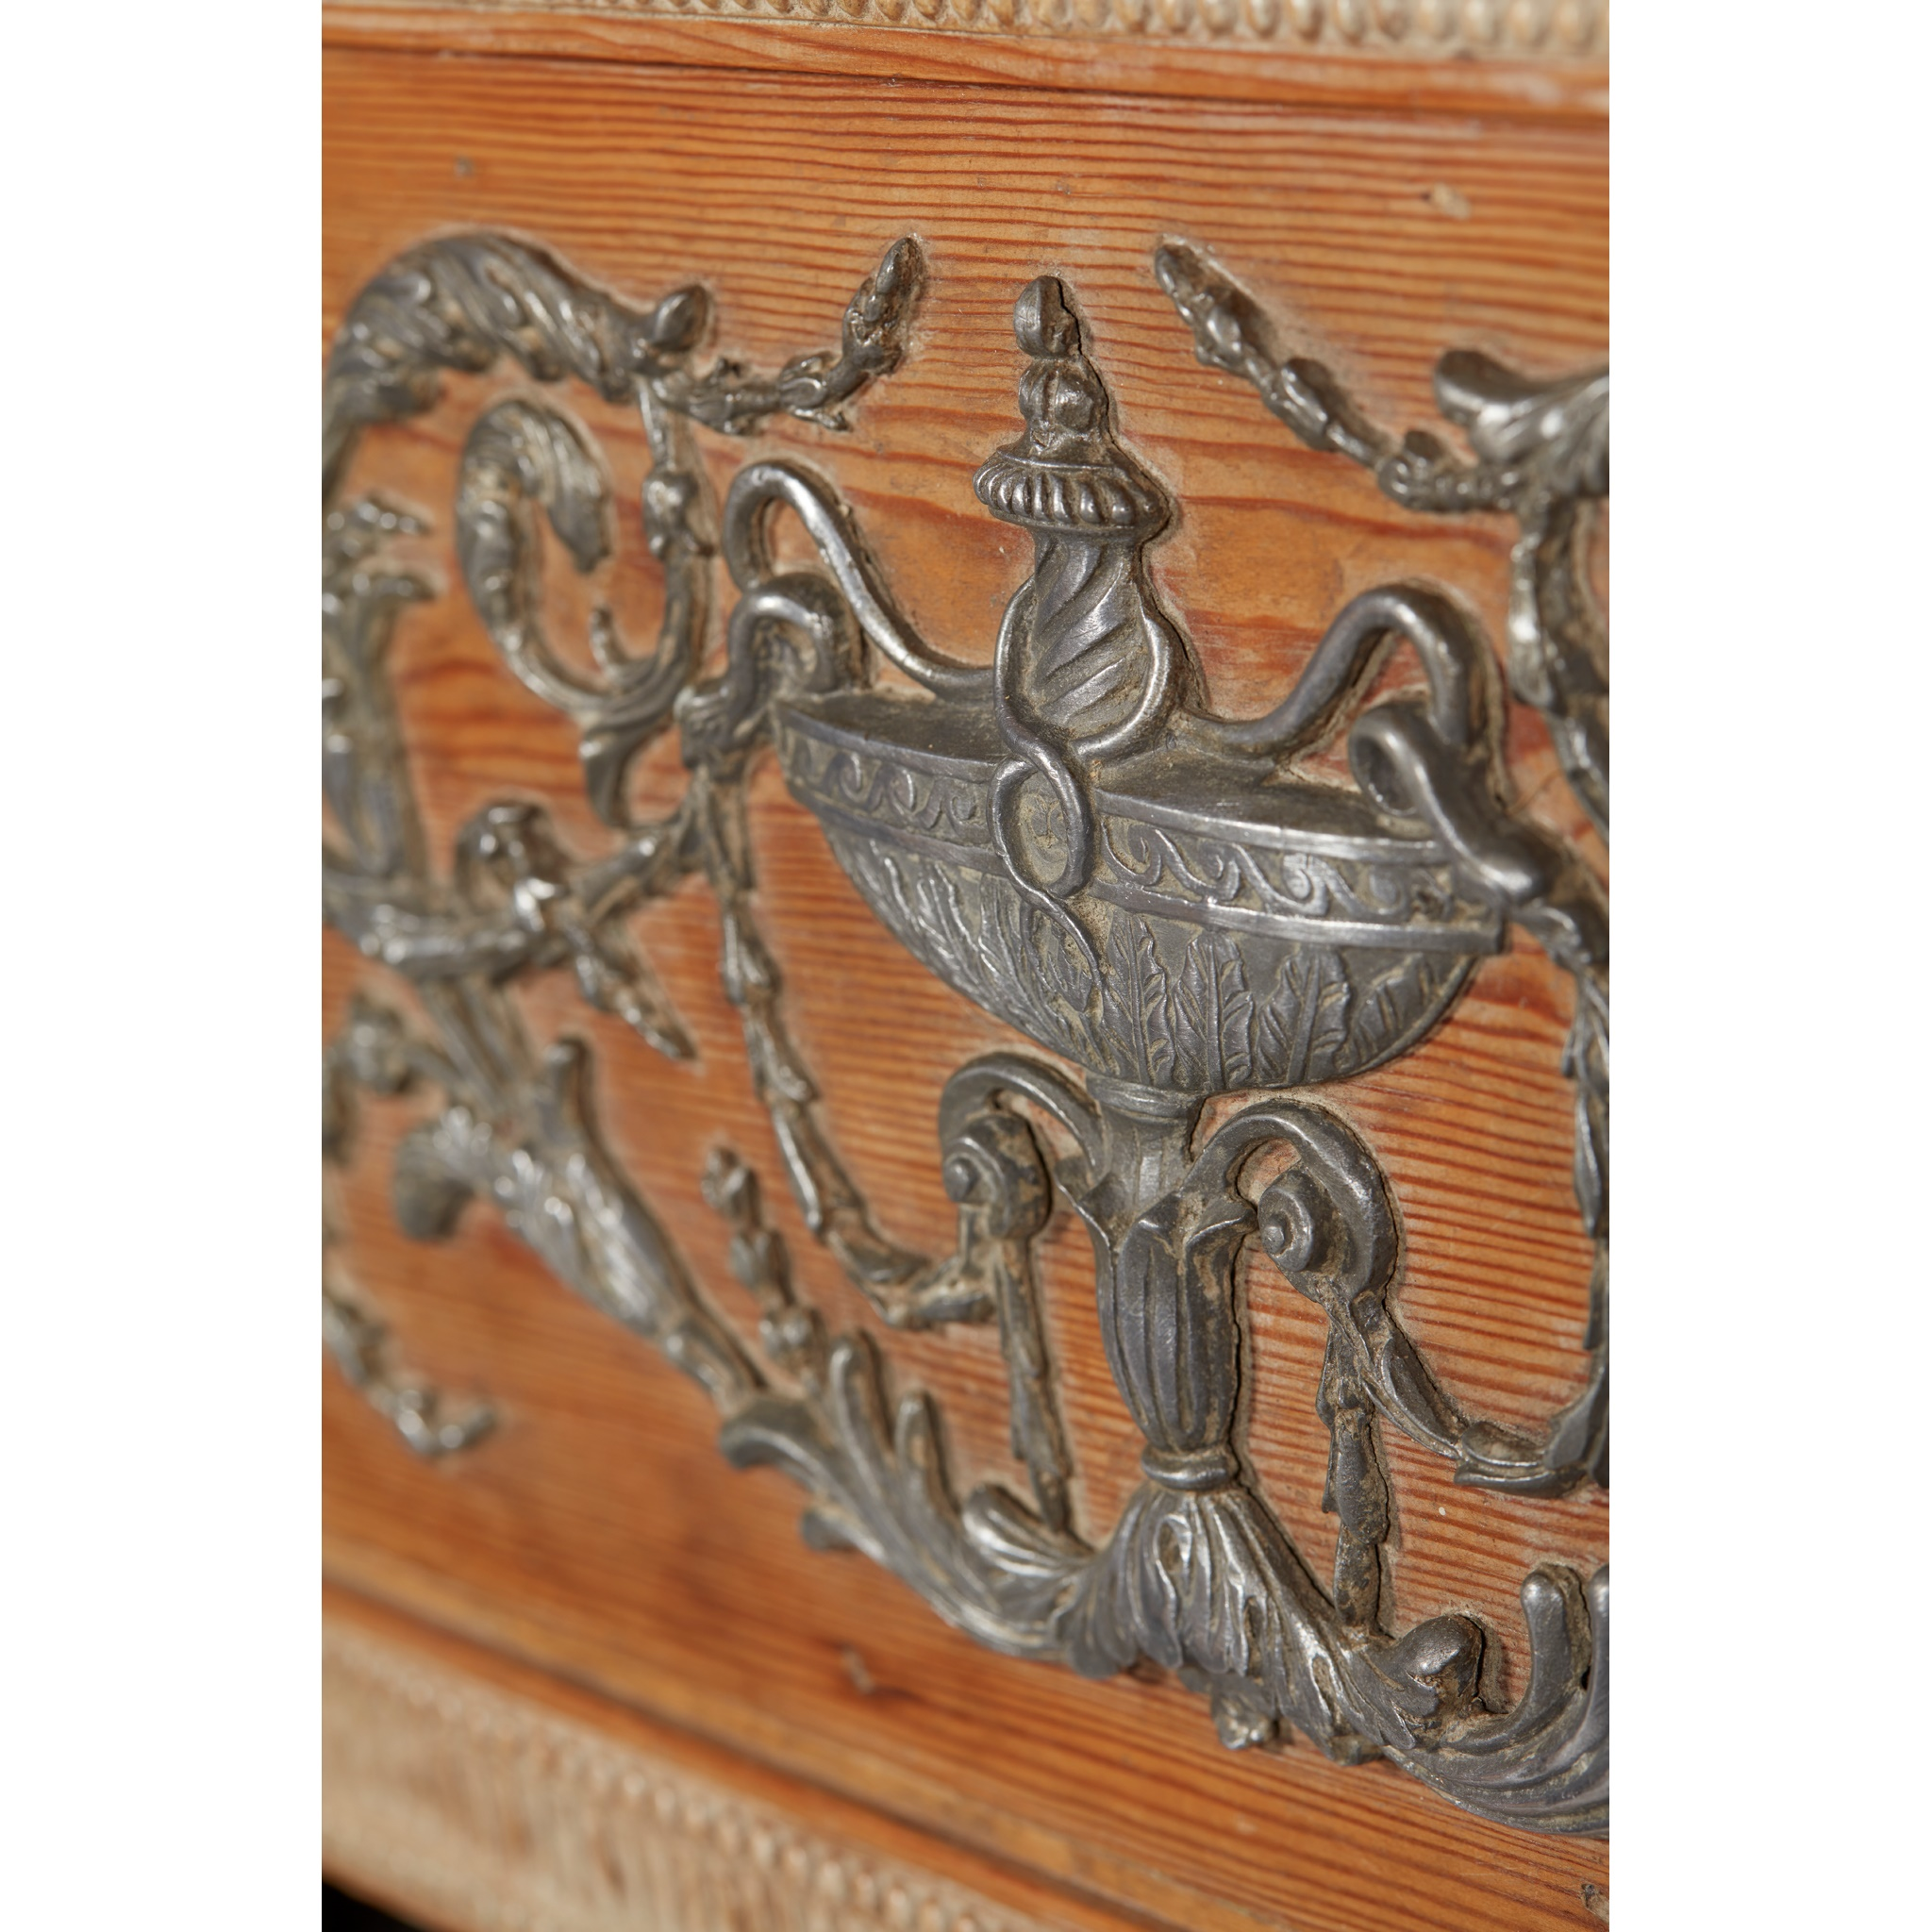 RARE GEORGE III PEWTER AND GESSO MOUNTED FIRE SURROUND 18TH CENTURY - Image 6 of 7